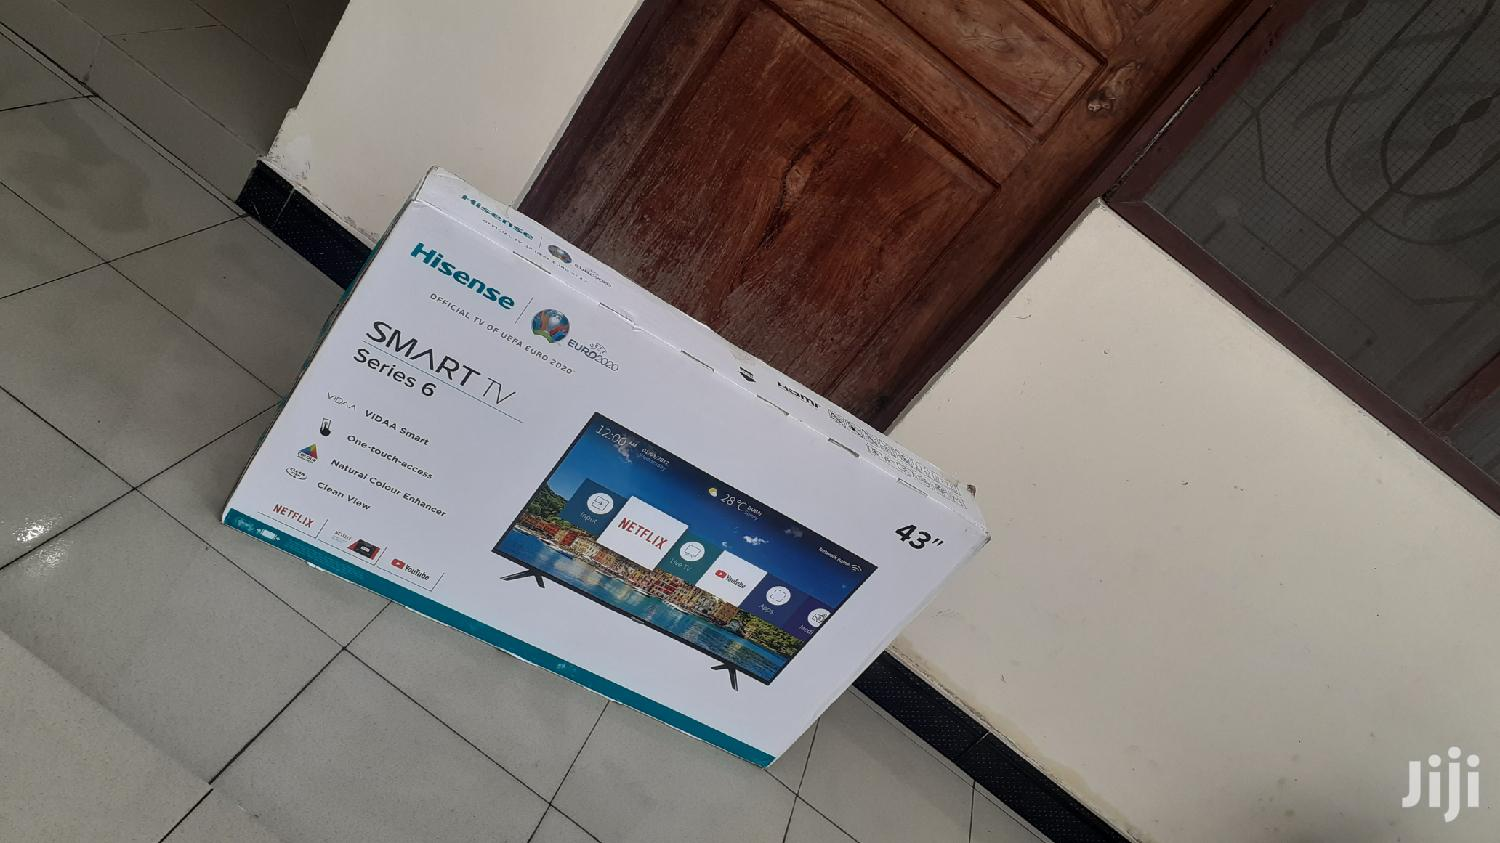 Hisence Smart TV Inch 43 | TV & DVD Equipment for sale in Ilala, Dar es Salaam, Tanzania